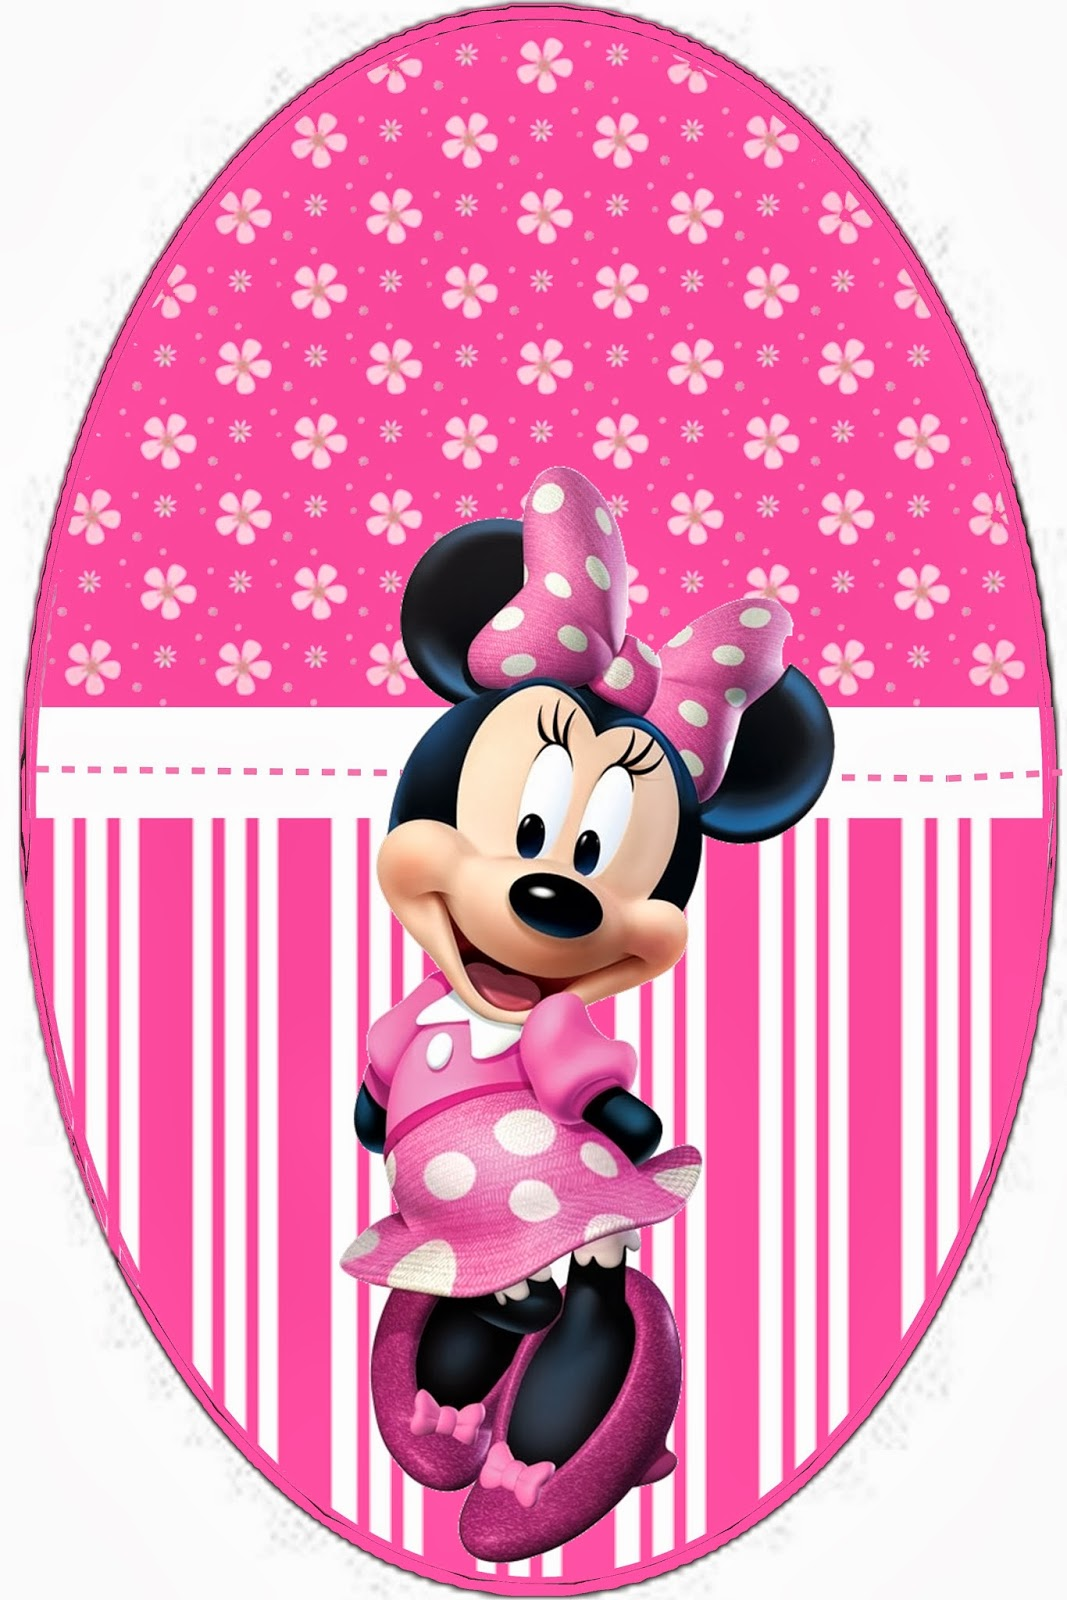 You searched for: minnie mouse red! Etsy is the home to thousands of handmade, vintage, and one-of-a-kind products and gifts related to your search. No matter what you're looking for or where you are in the world, our global marketplace of sellers can help you find unique and affordable options. Let's get started!